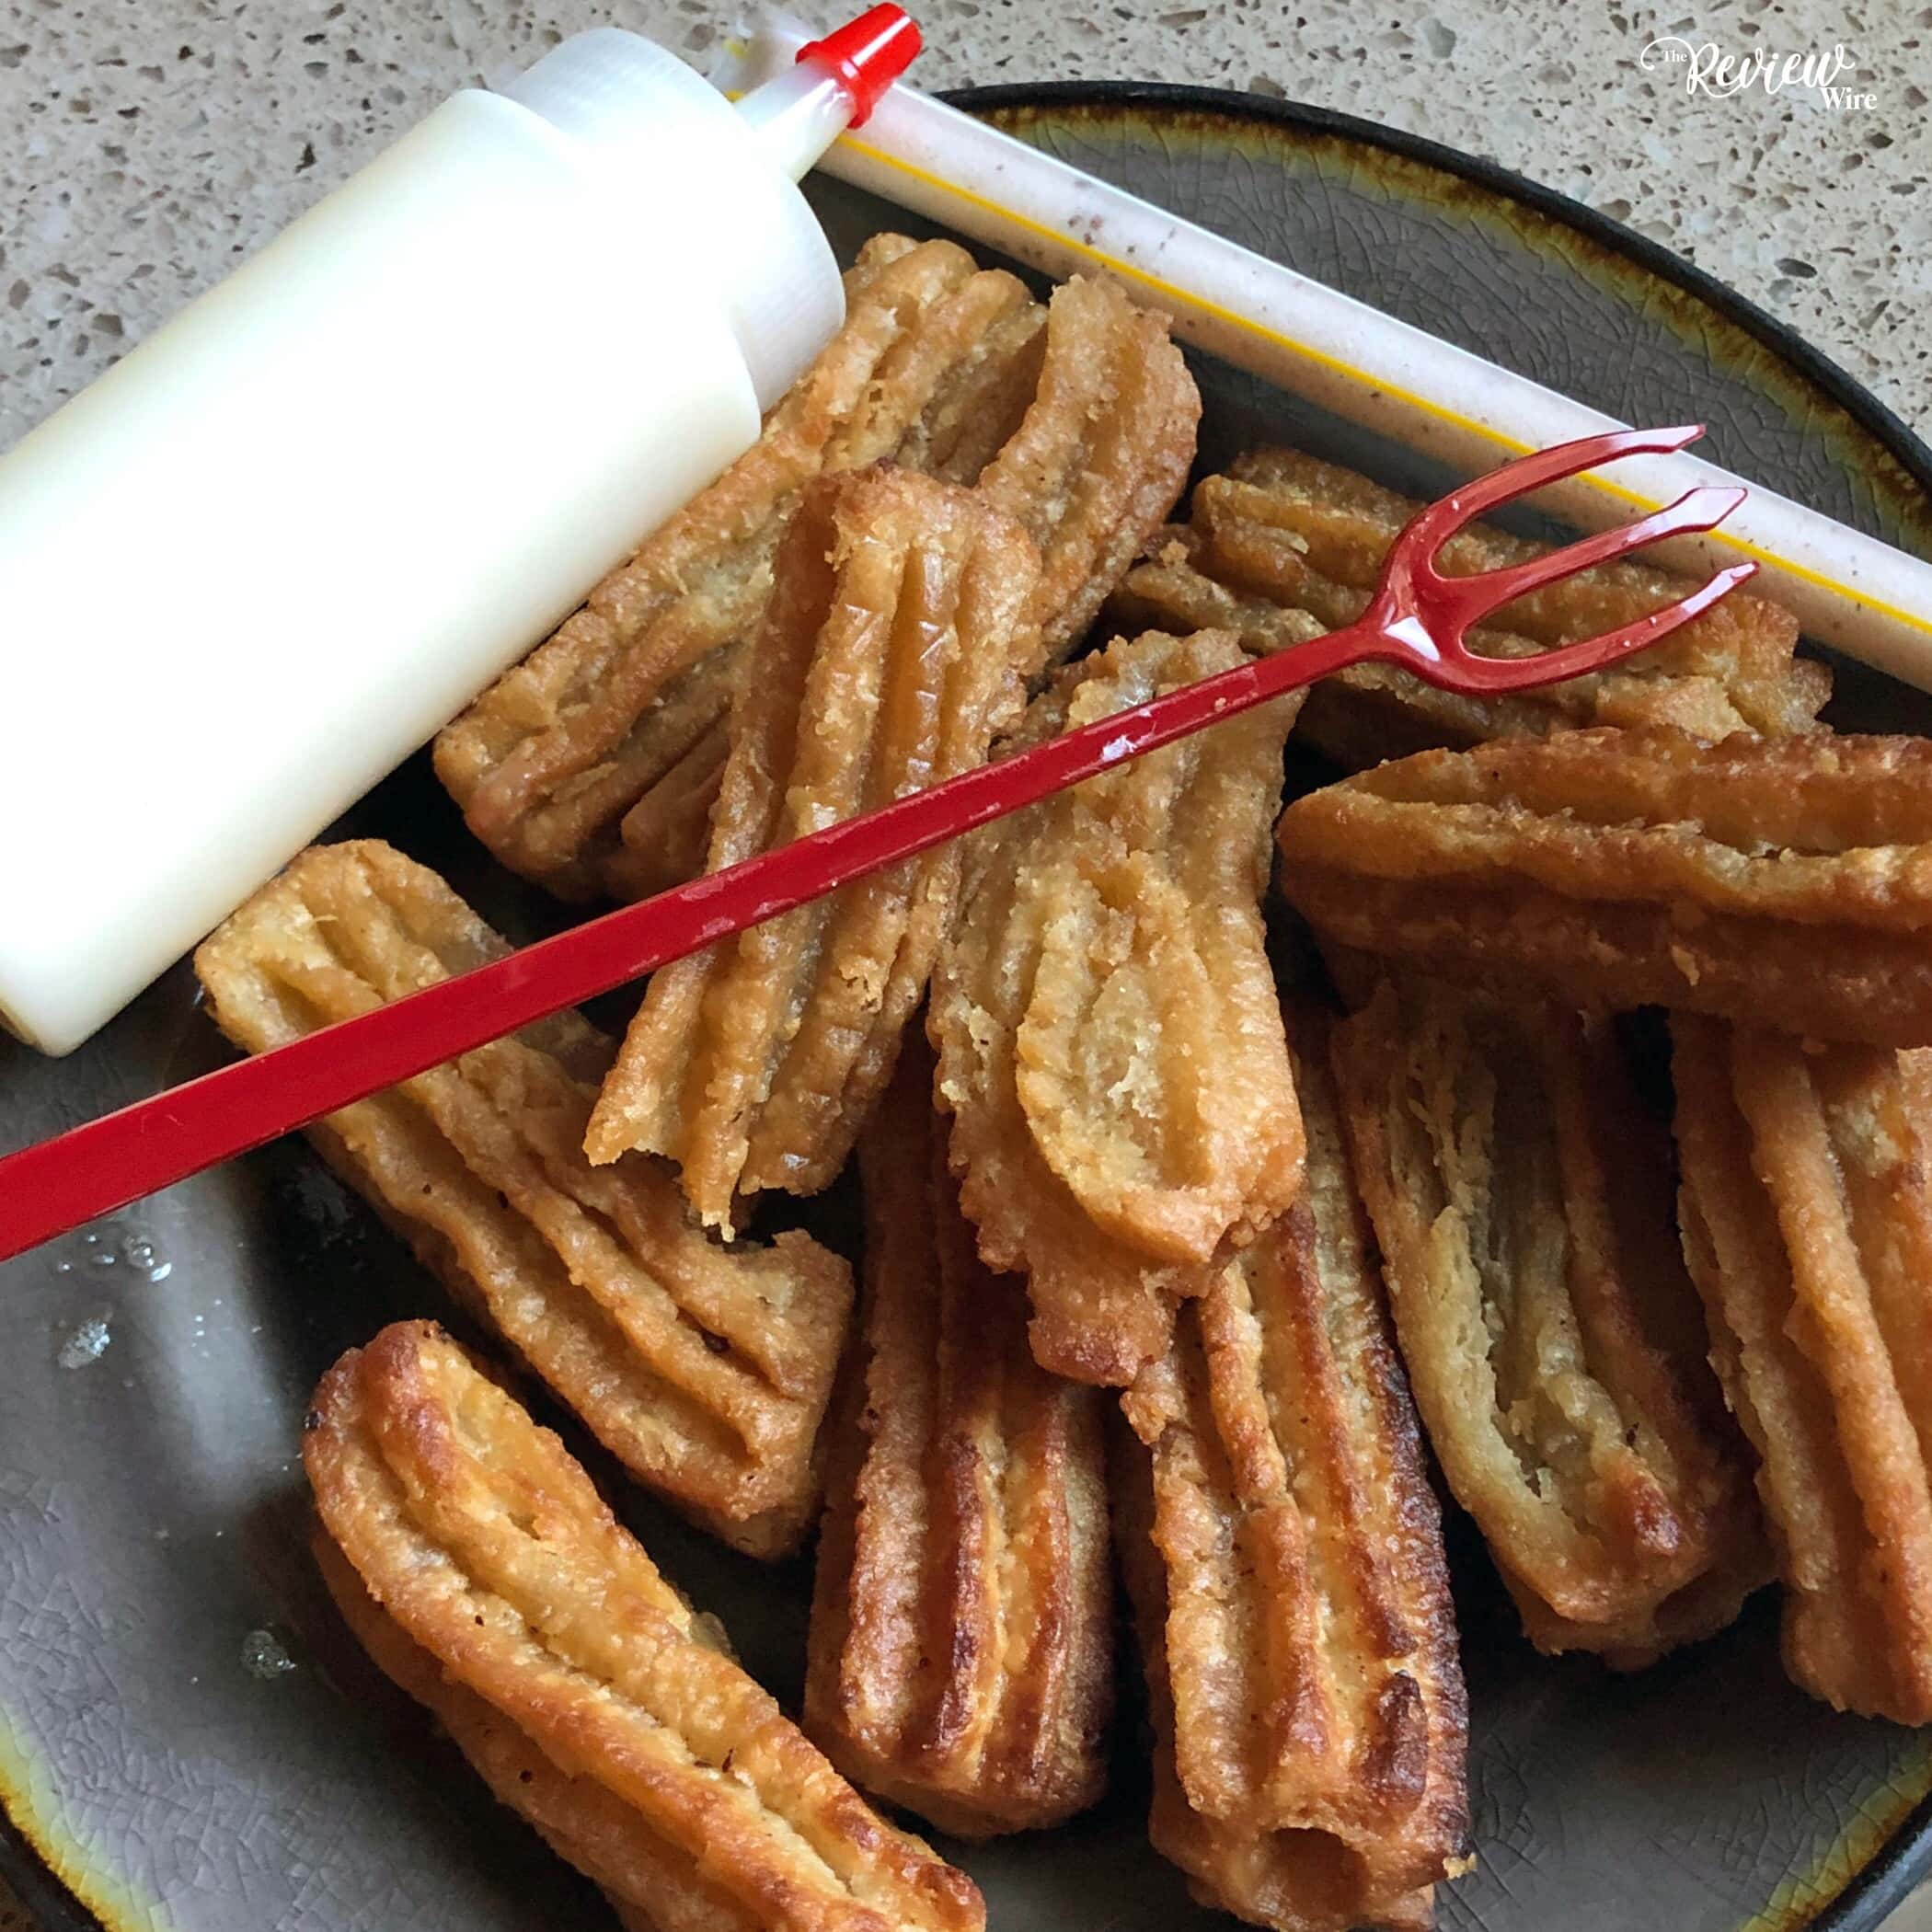 San Diablo Take and Bake Churro Kit